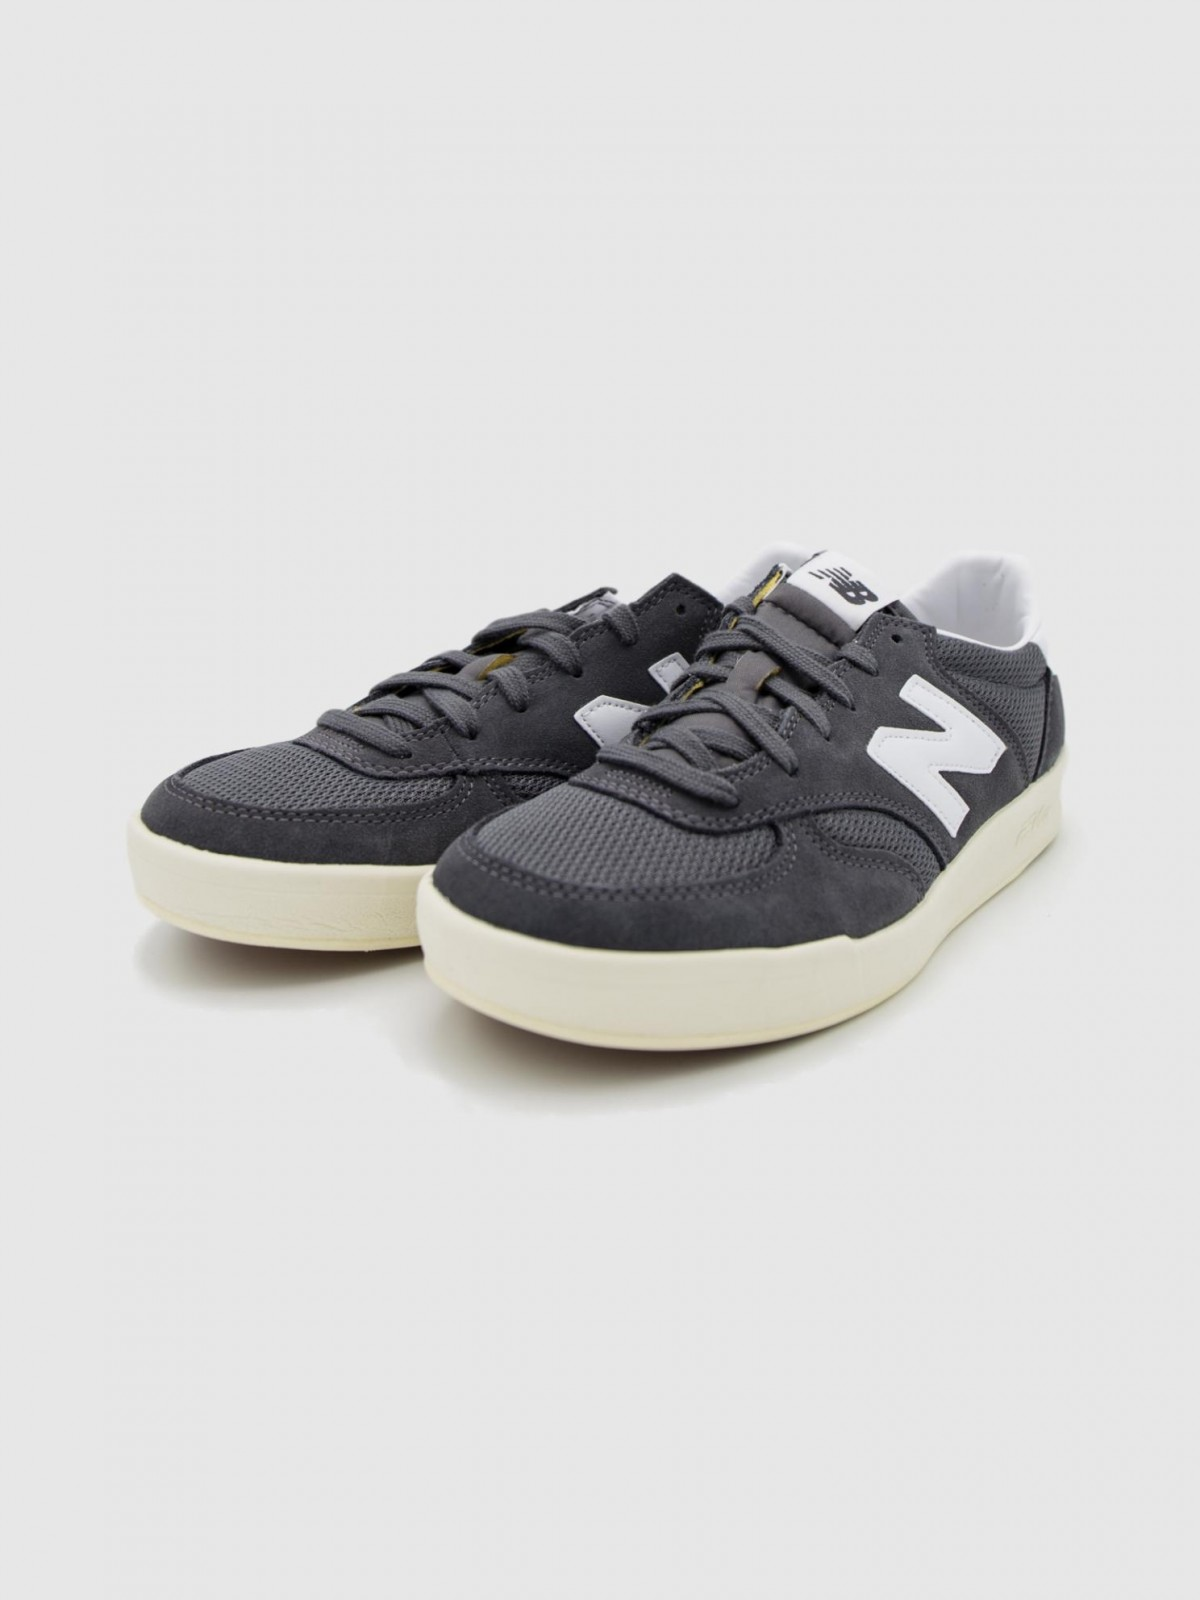 New Balance CRT300PE in Magnet